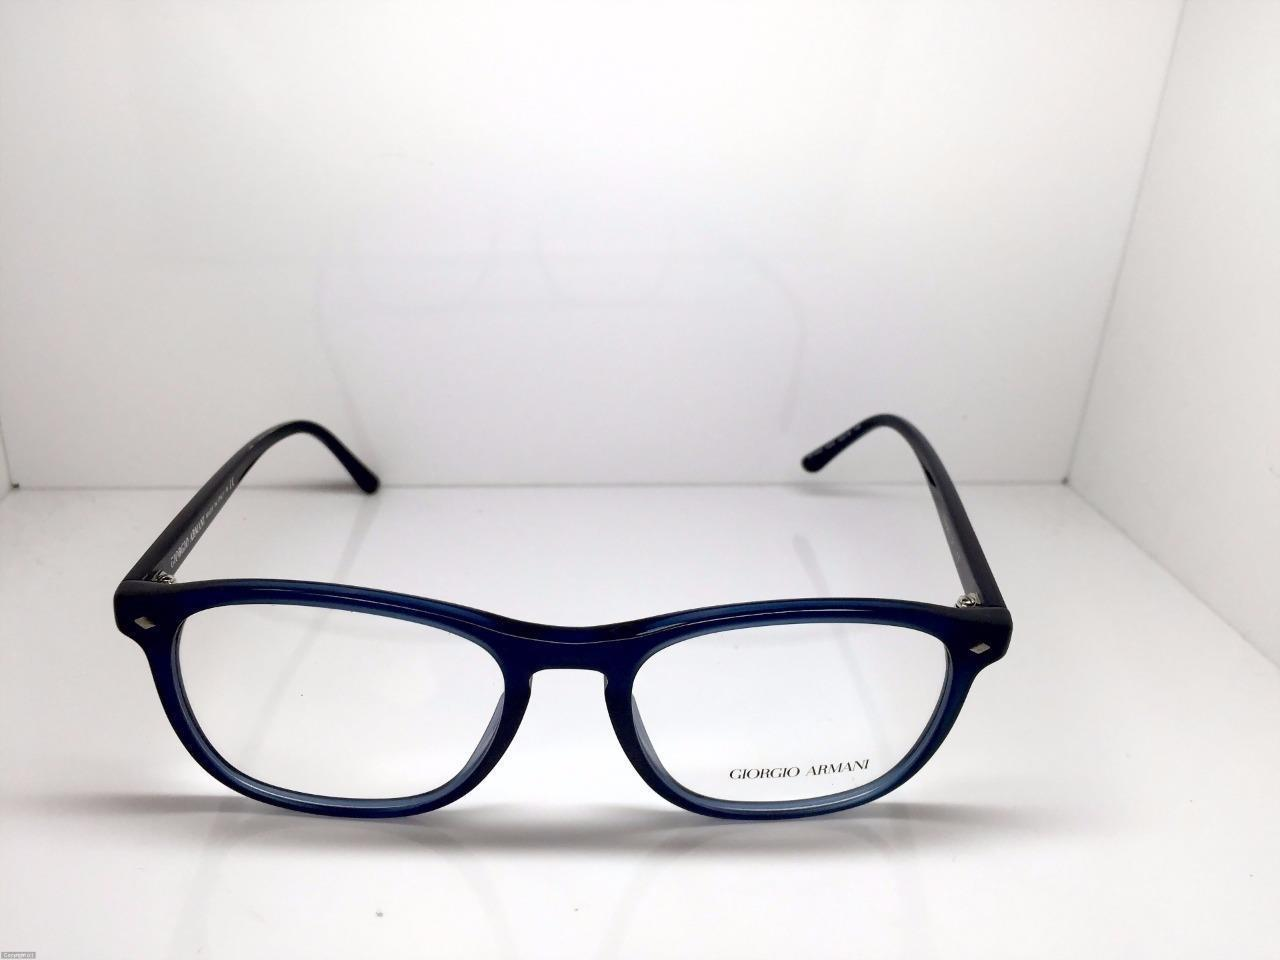 9154f65f70a GIORGIO ARMANI Eyeglasses AR 7003 5004 Matte Black and Blue Transparent 52MM